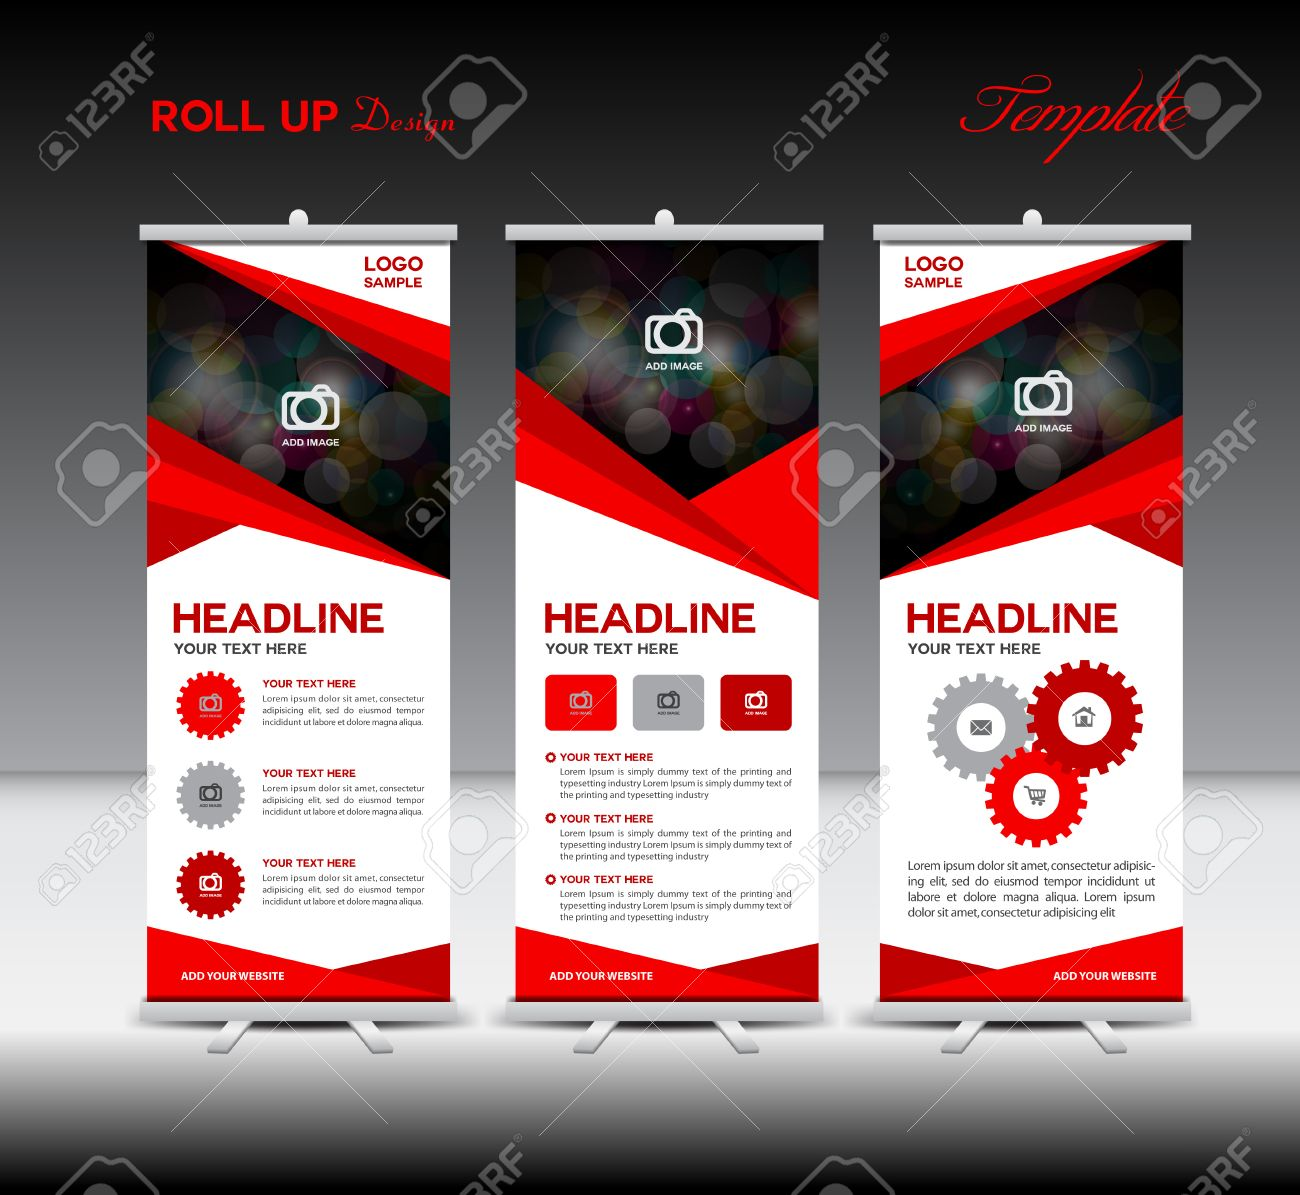 Red Roll Up Banner template and info graphics, stand design,banner template, illustration - 56069841